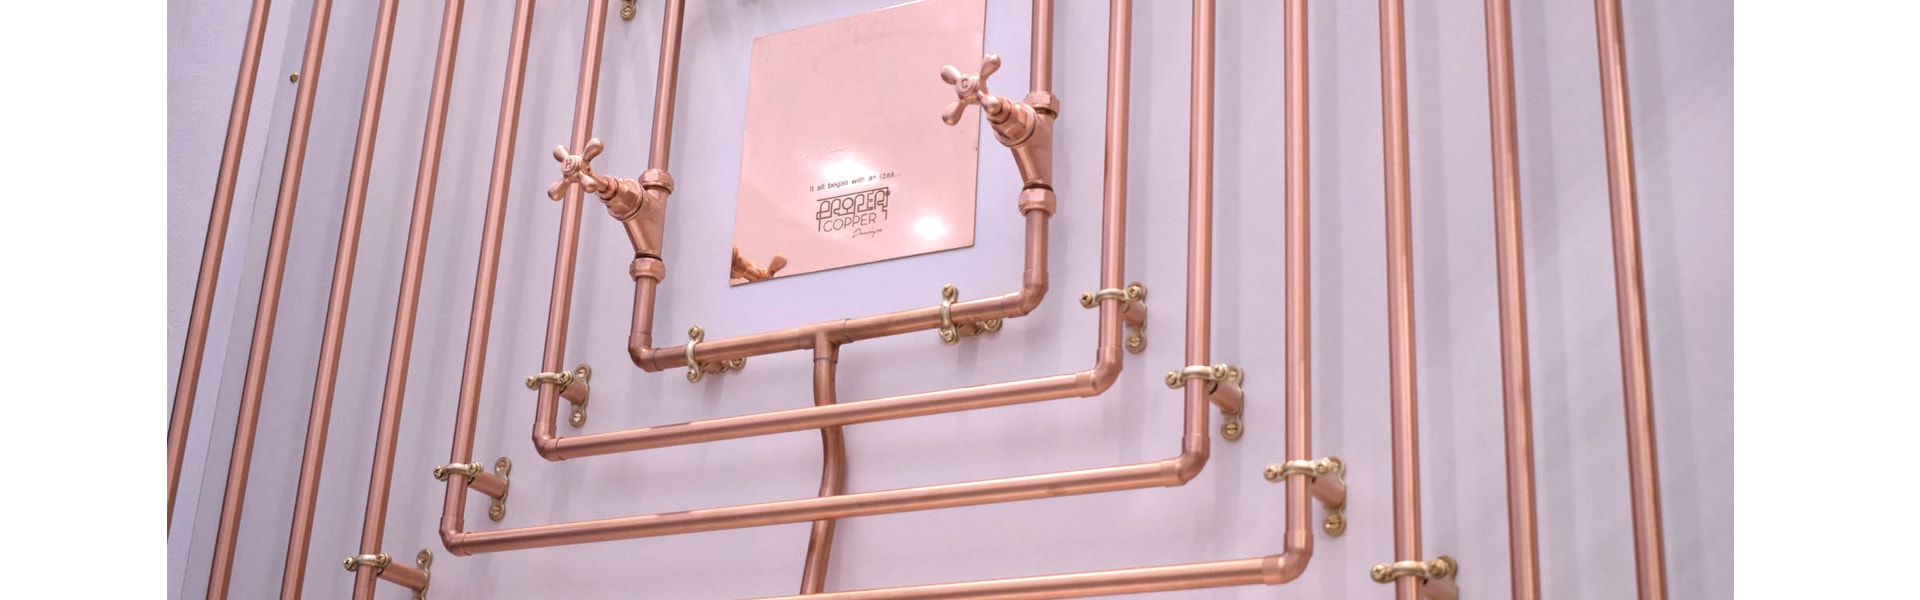 copper fountain-copper water features-our story-proper copper design